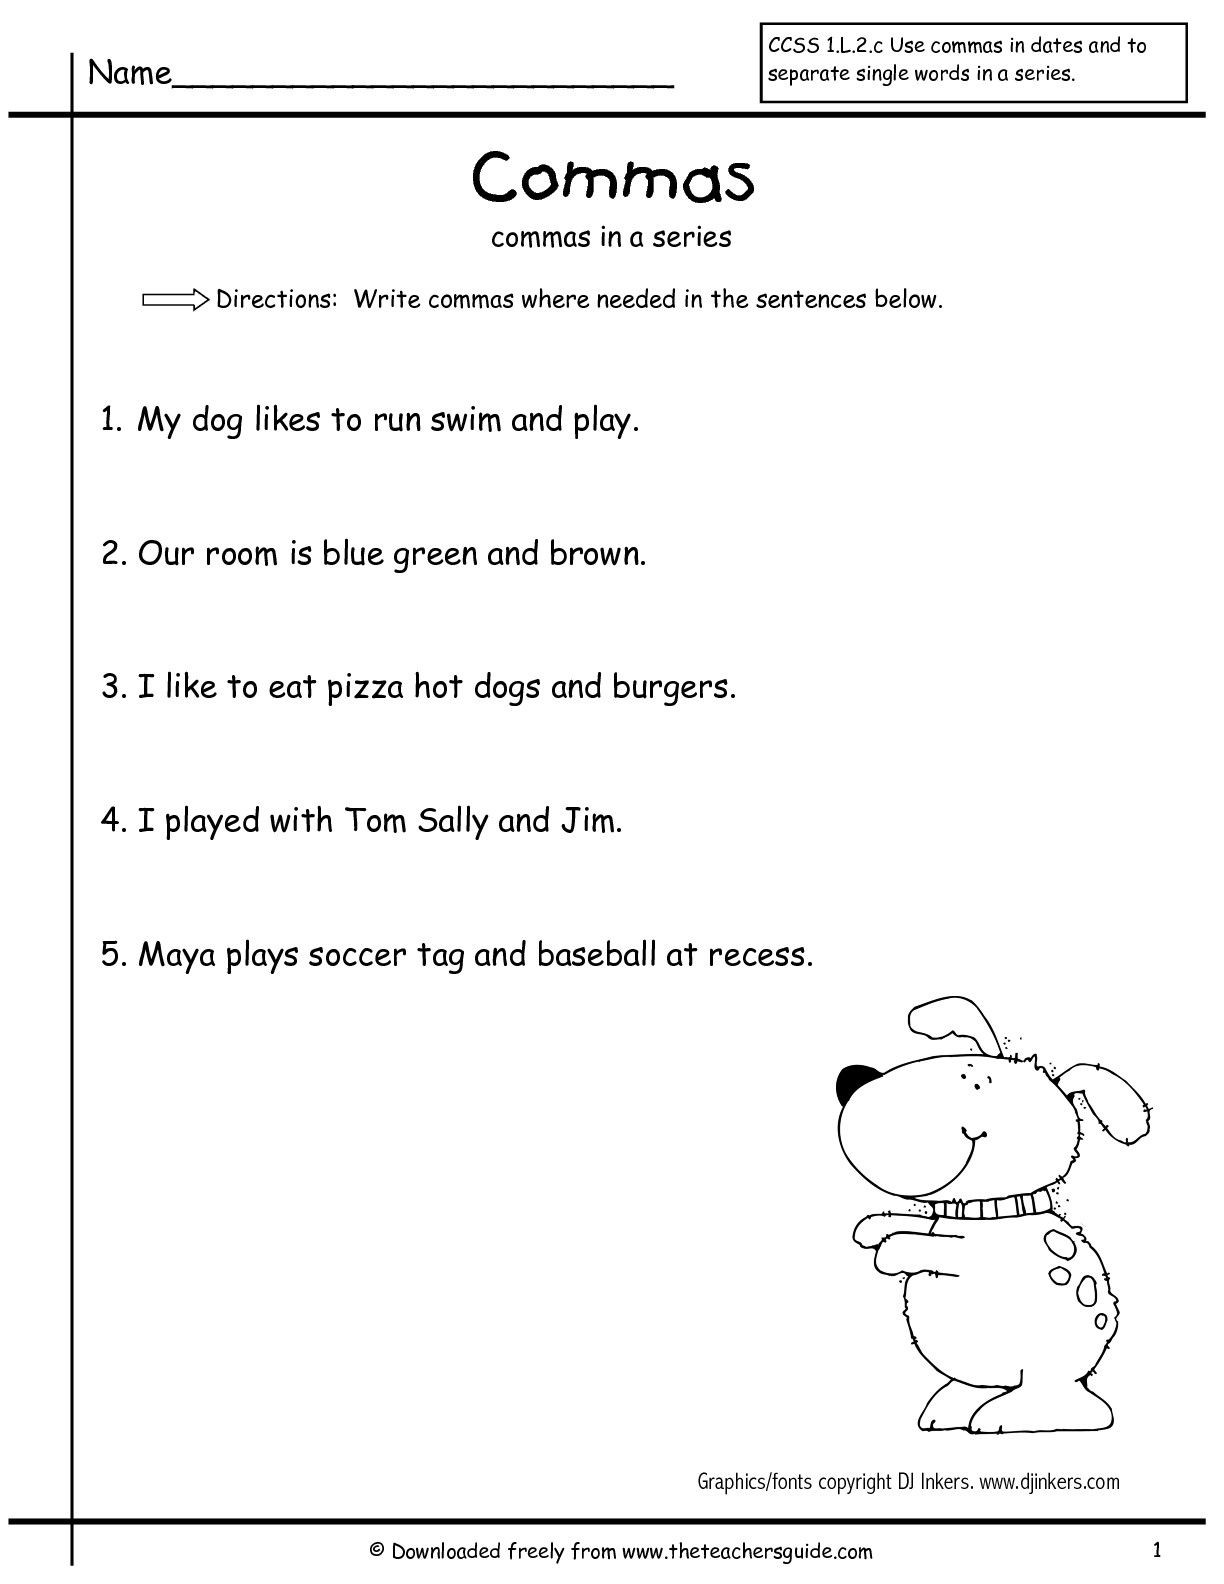 Commas Worksheet 5th Grade Masinseriesfirstgrade2 001 001 1224—1584